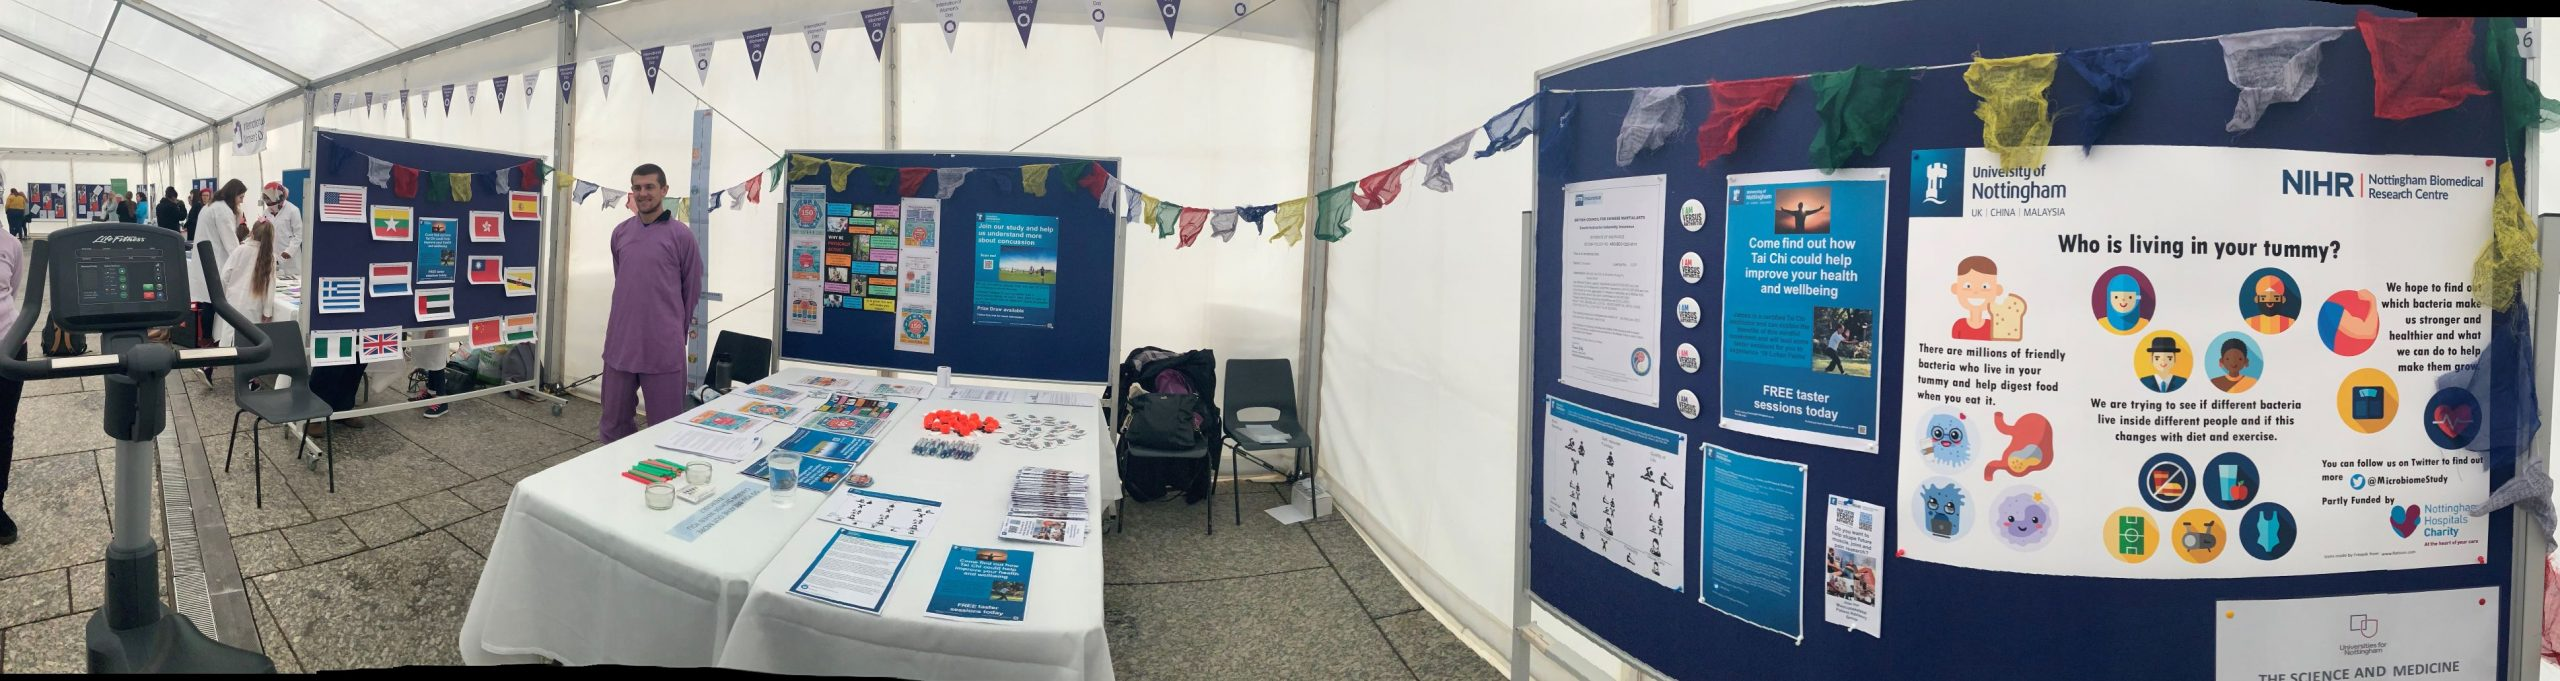 International Women's Day 2020 University of Nottingham Sport and Exercise Medicine stand